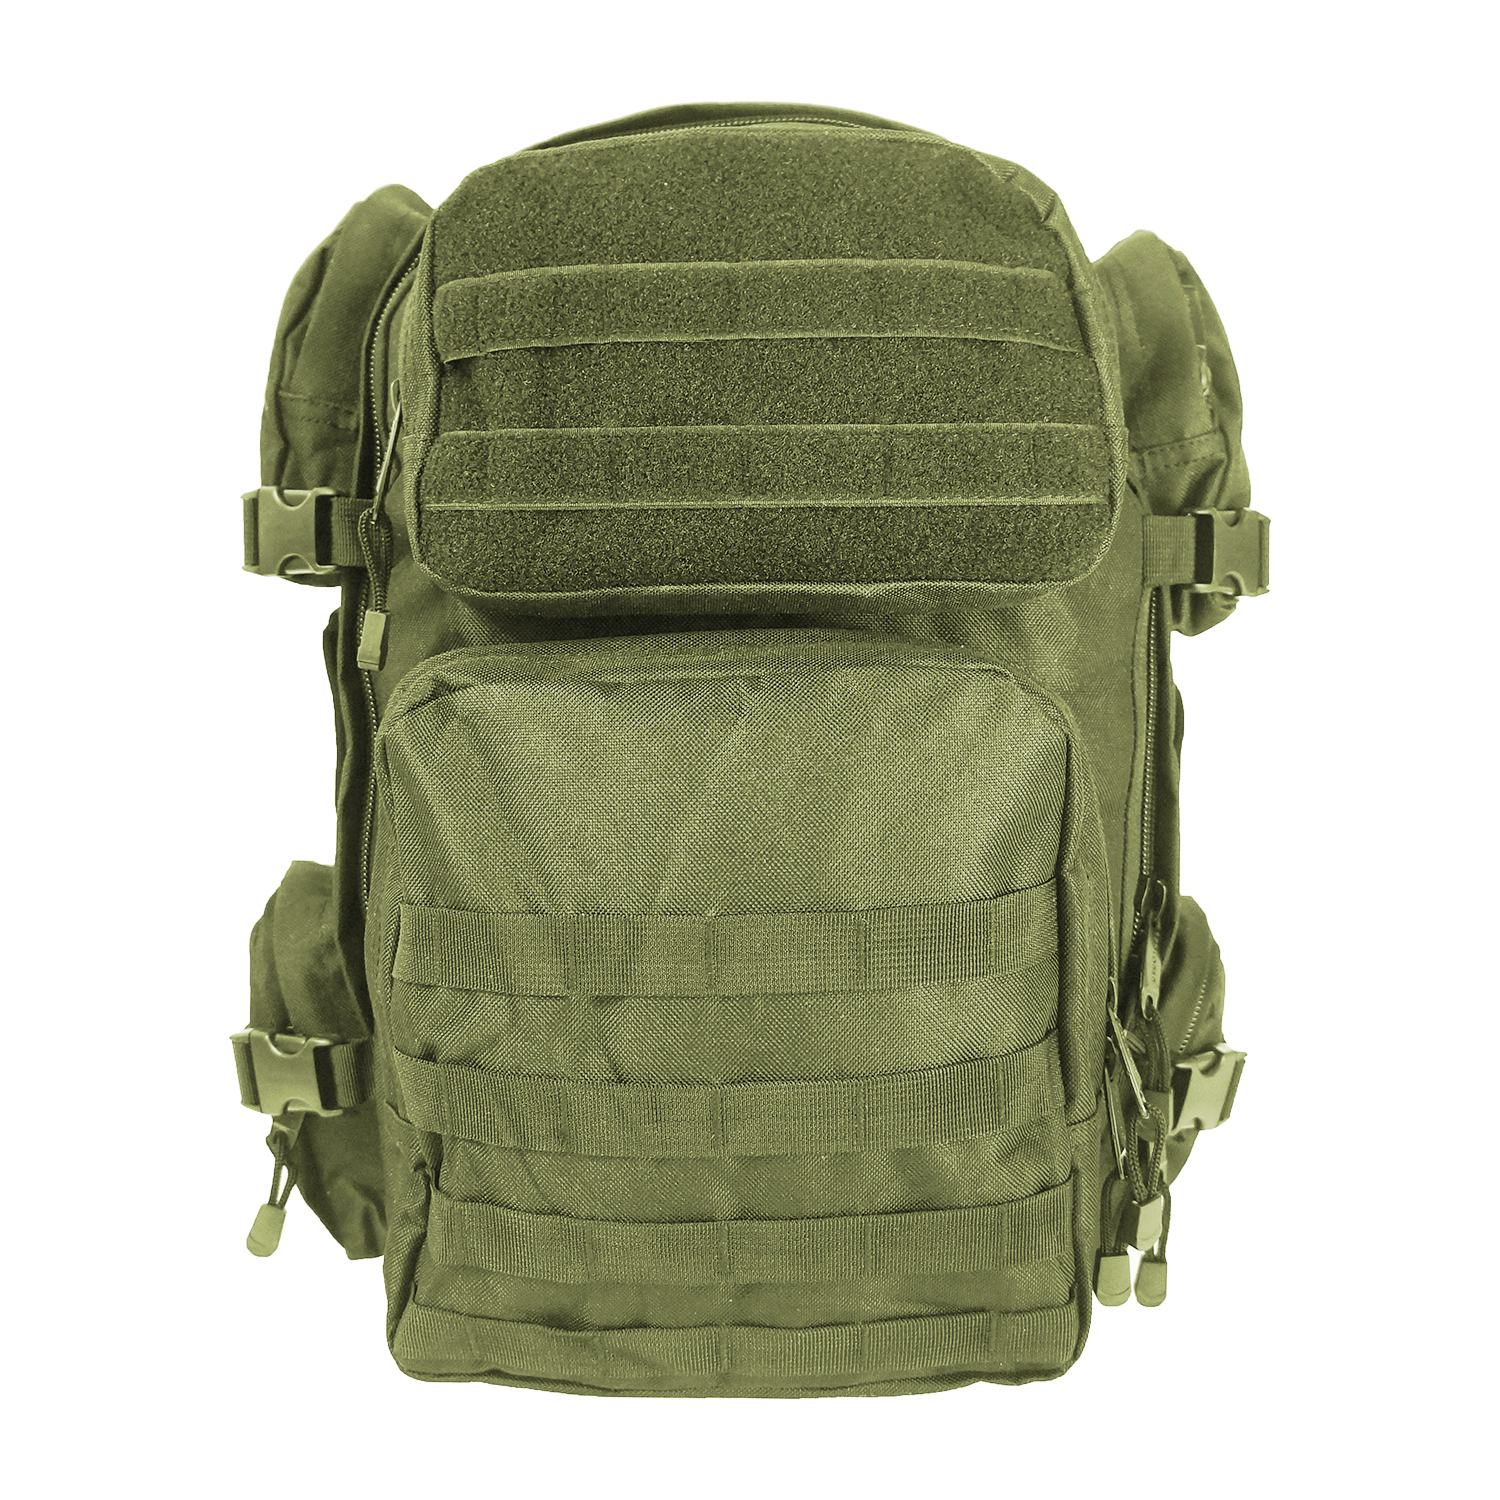 Every Day Carry Tactical Barrage Bag Day Pack Backpack with Molle Webbing - ODG